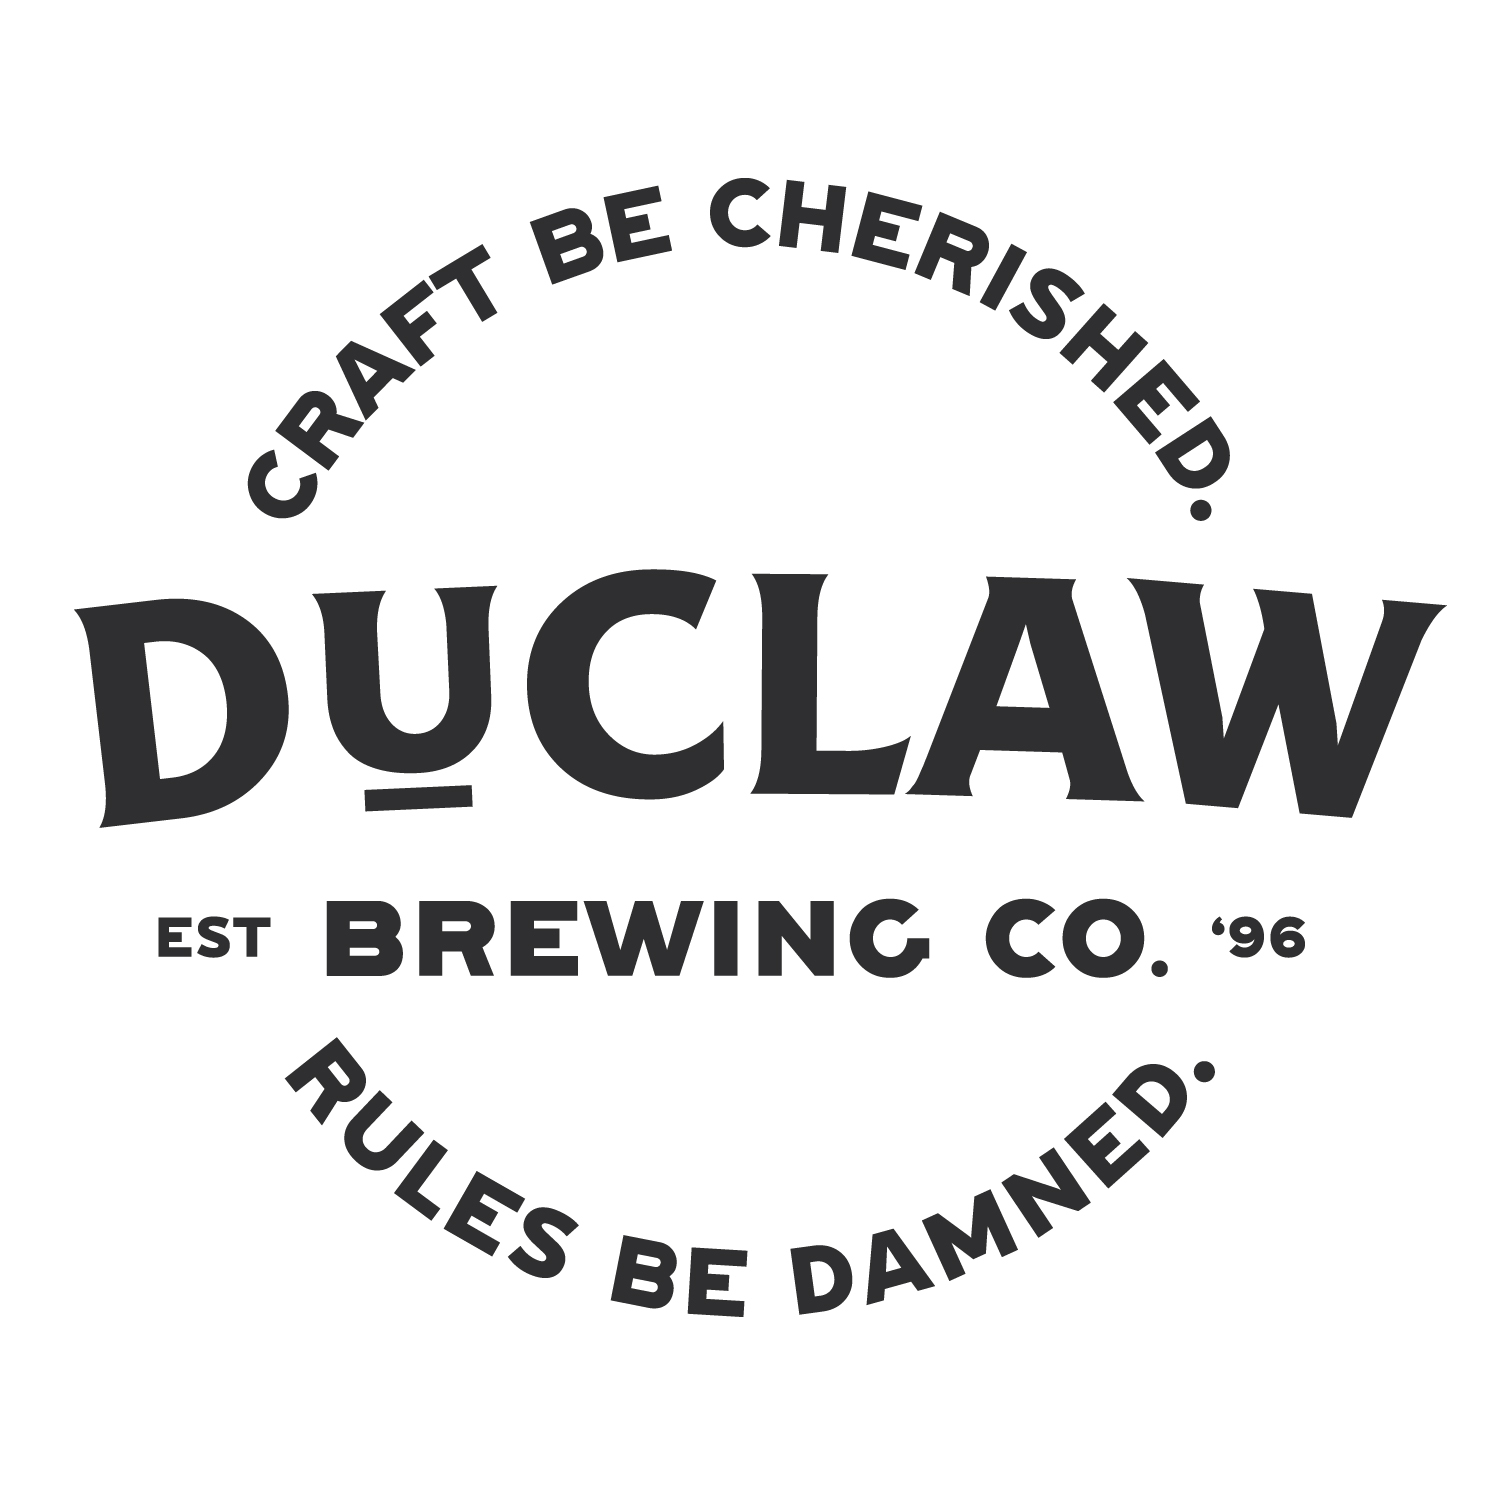 duclaw   brewing company  Baltimore, MD